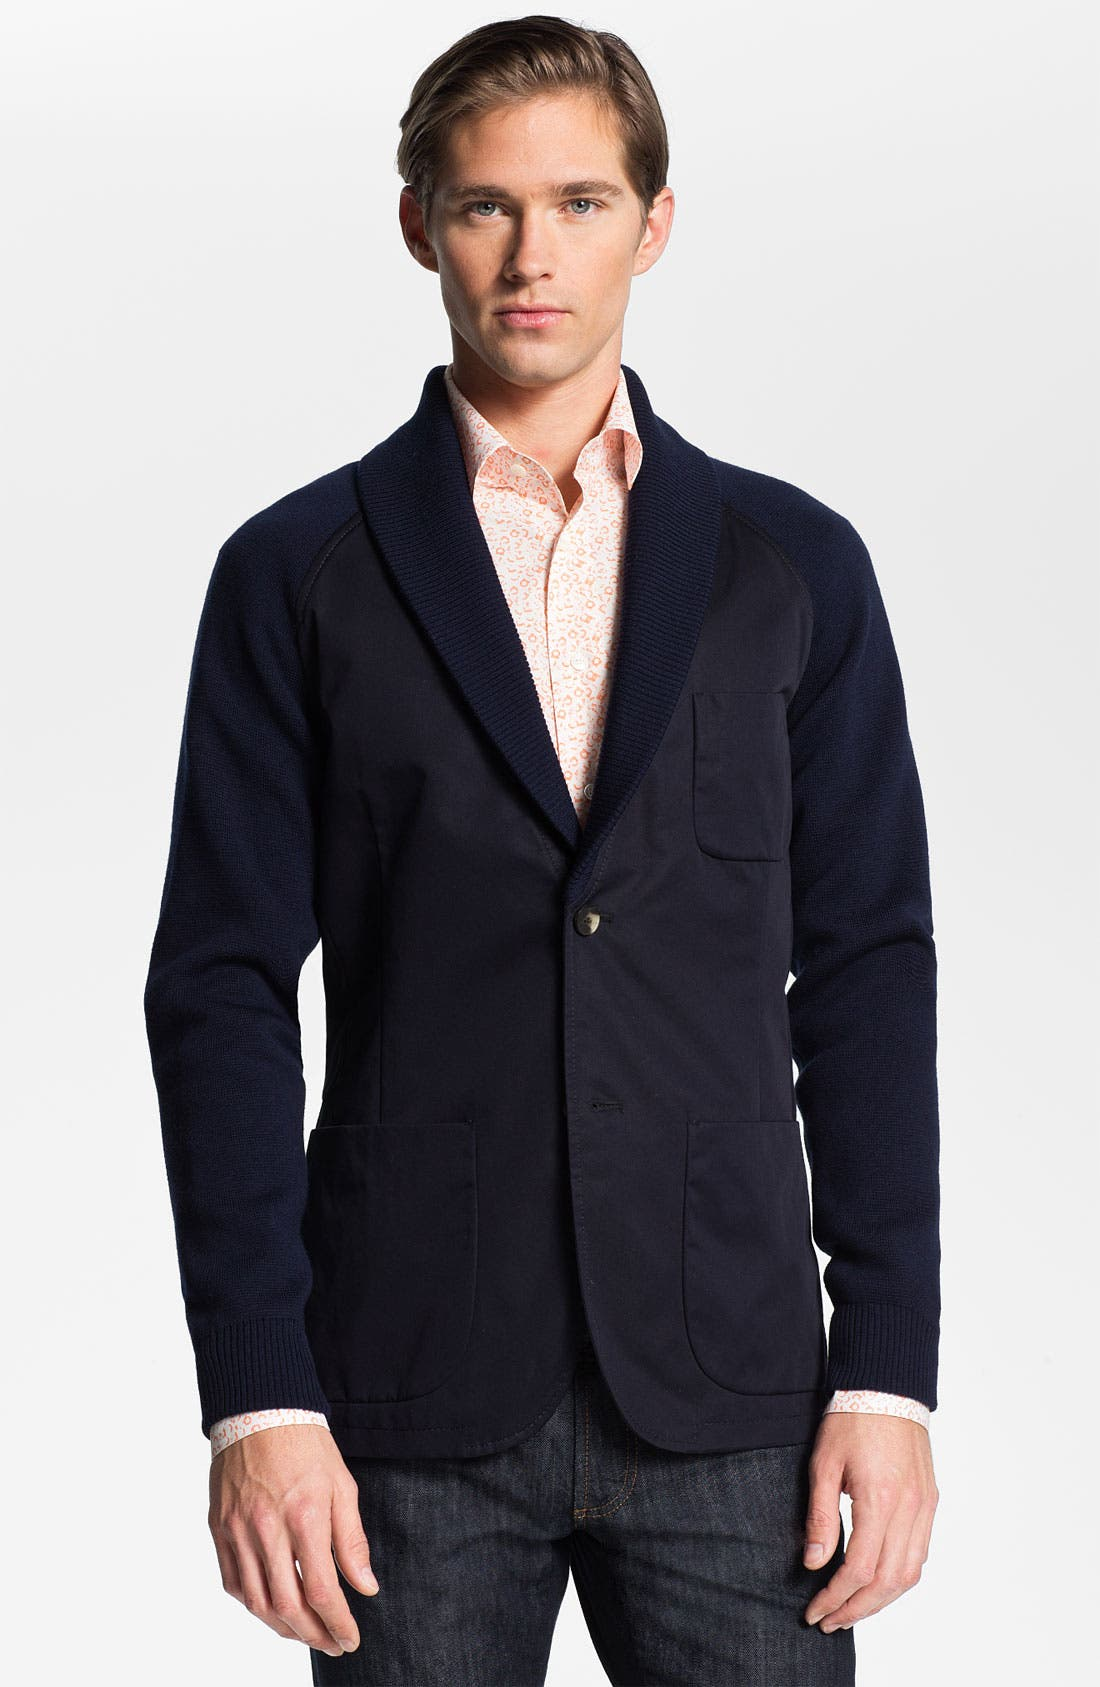 Alternate Image 1 Selected - Salvatore Ferragamo Shawl Collar Sportcoat with Knit Trim